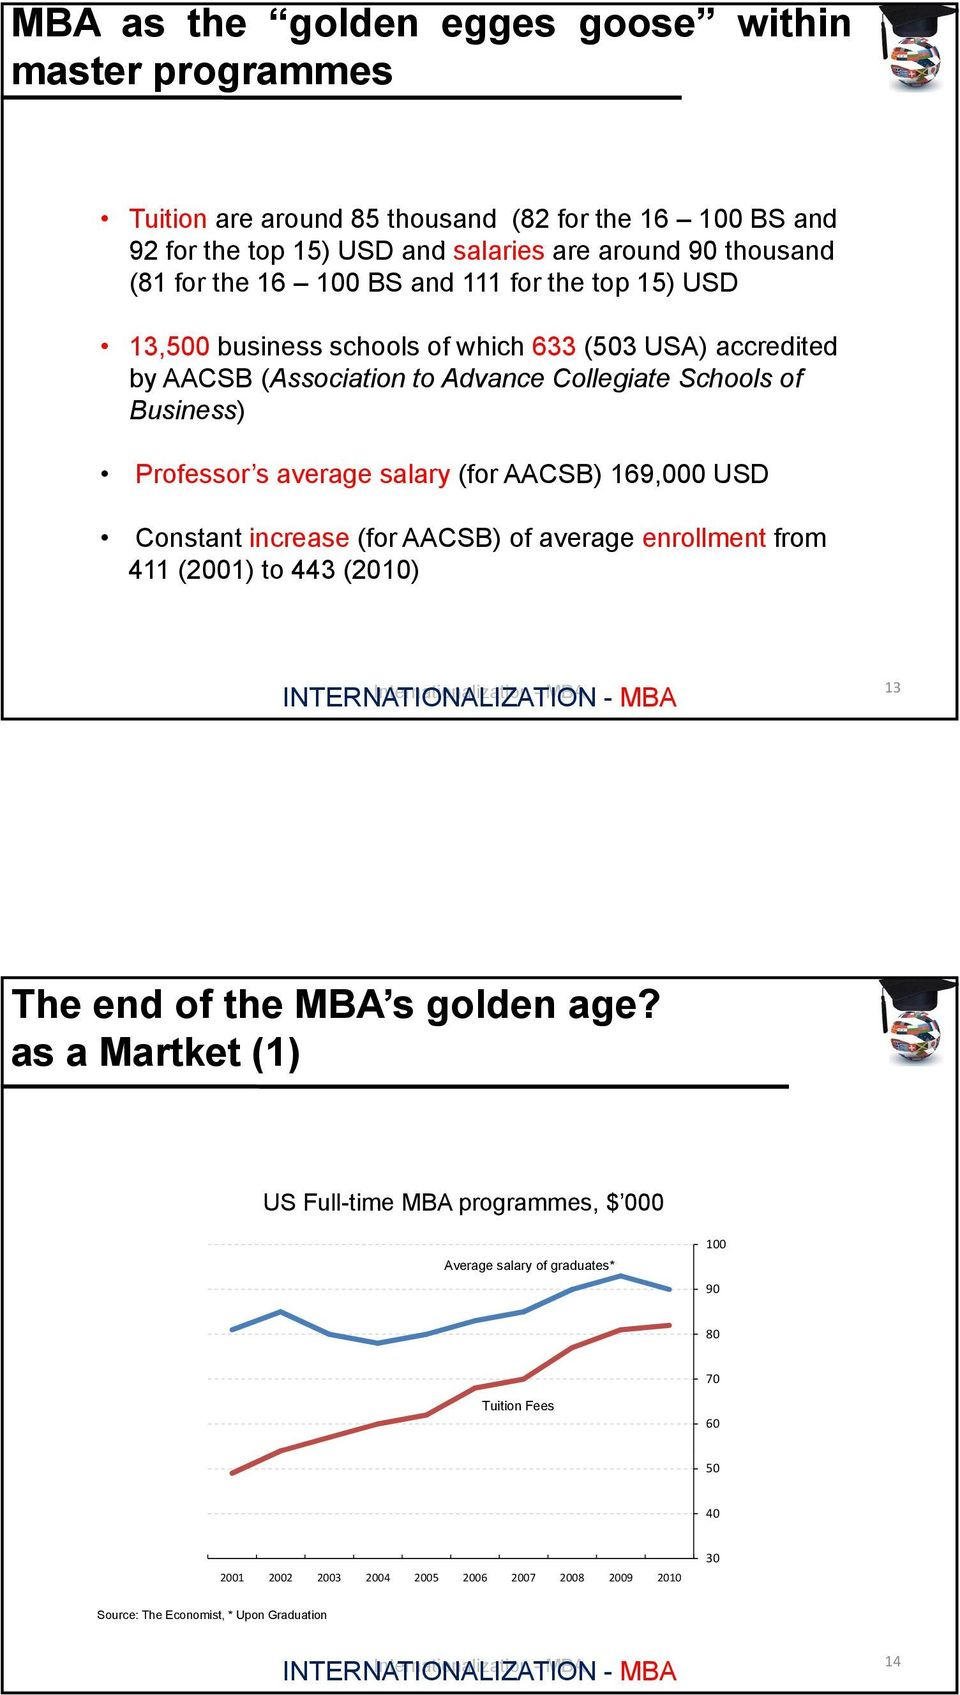 average salary (for AACSB) 169,000 USD Constant increase (for AACSB) of average enrollment from 411 (2001) to 443 (2010) 13 The end of the MBA s golden age?